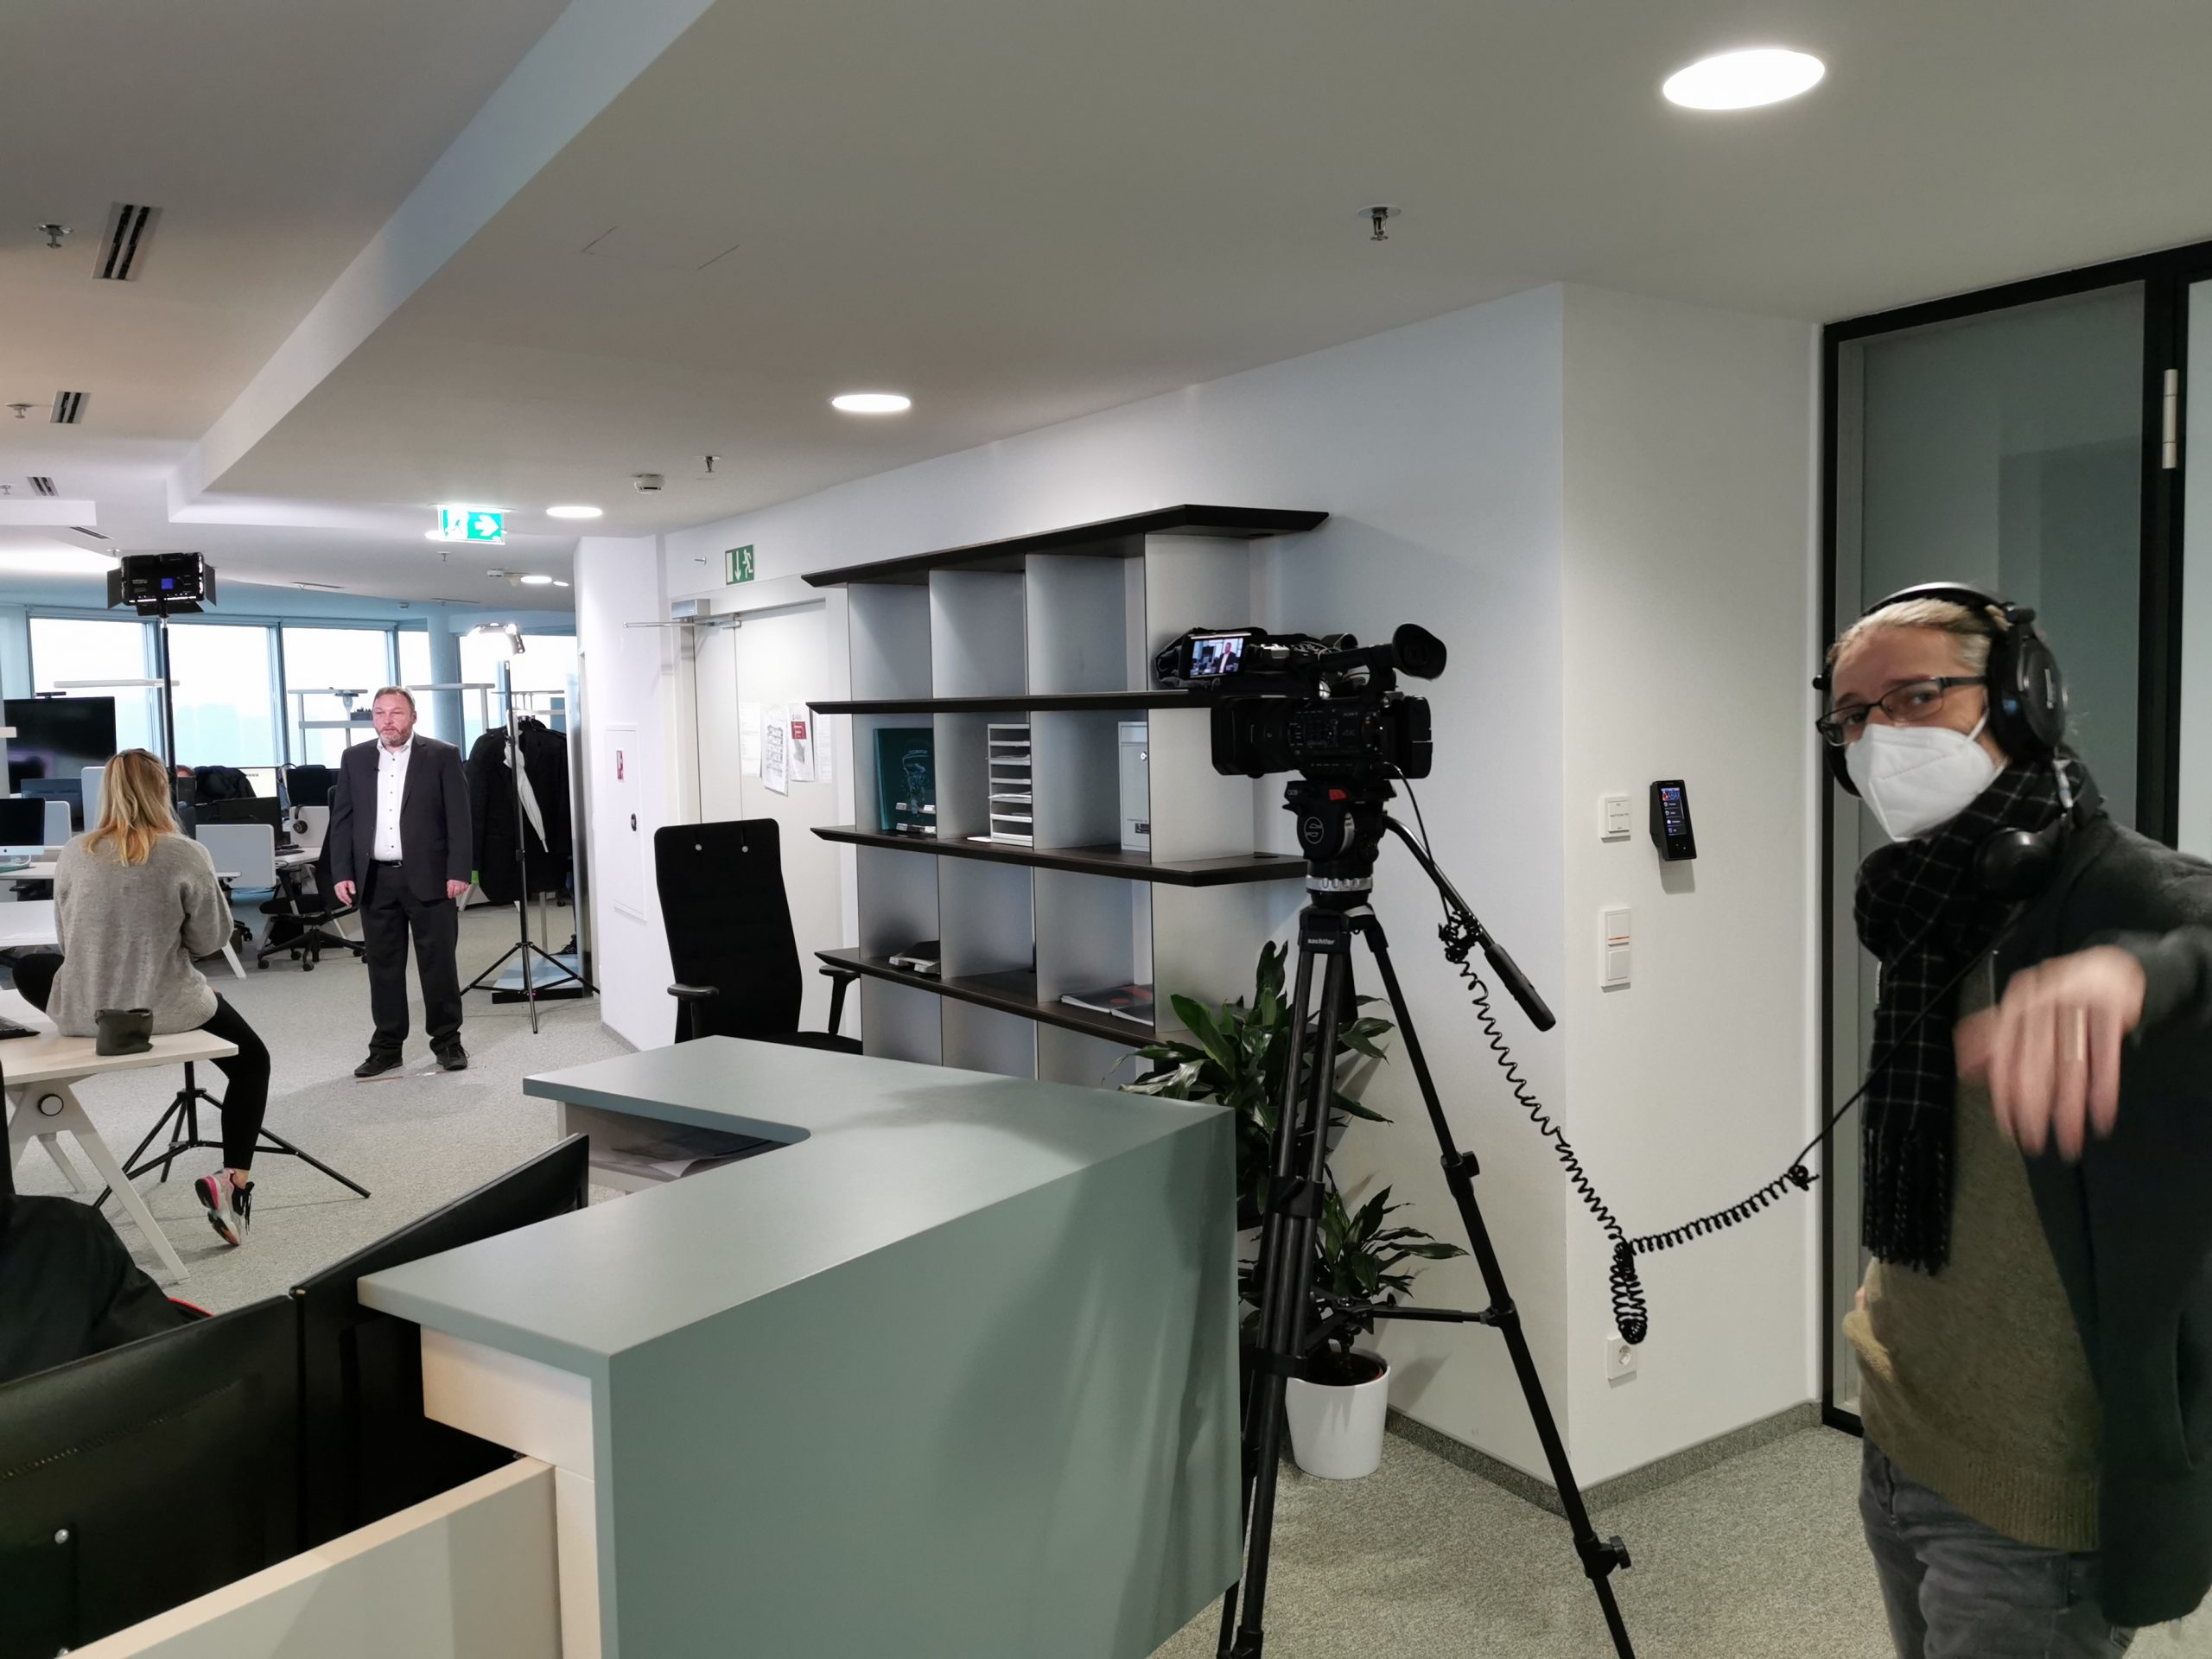 ABAX Inside: Video shooting day